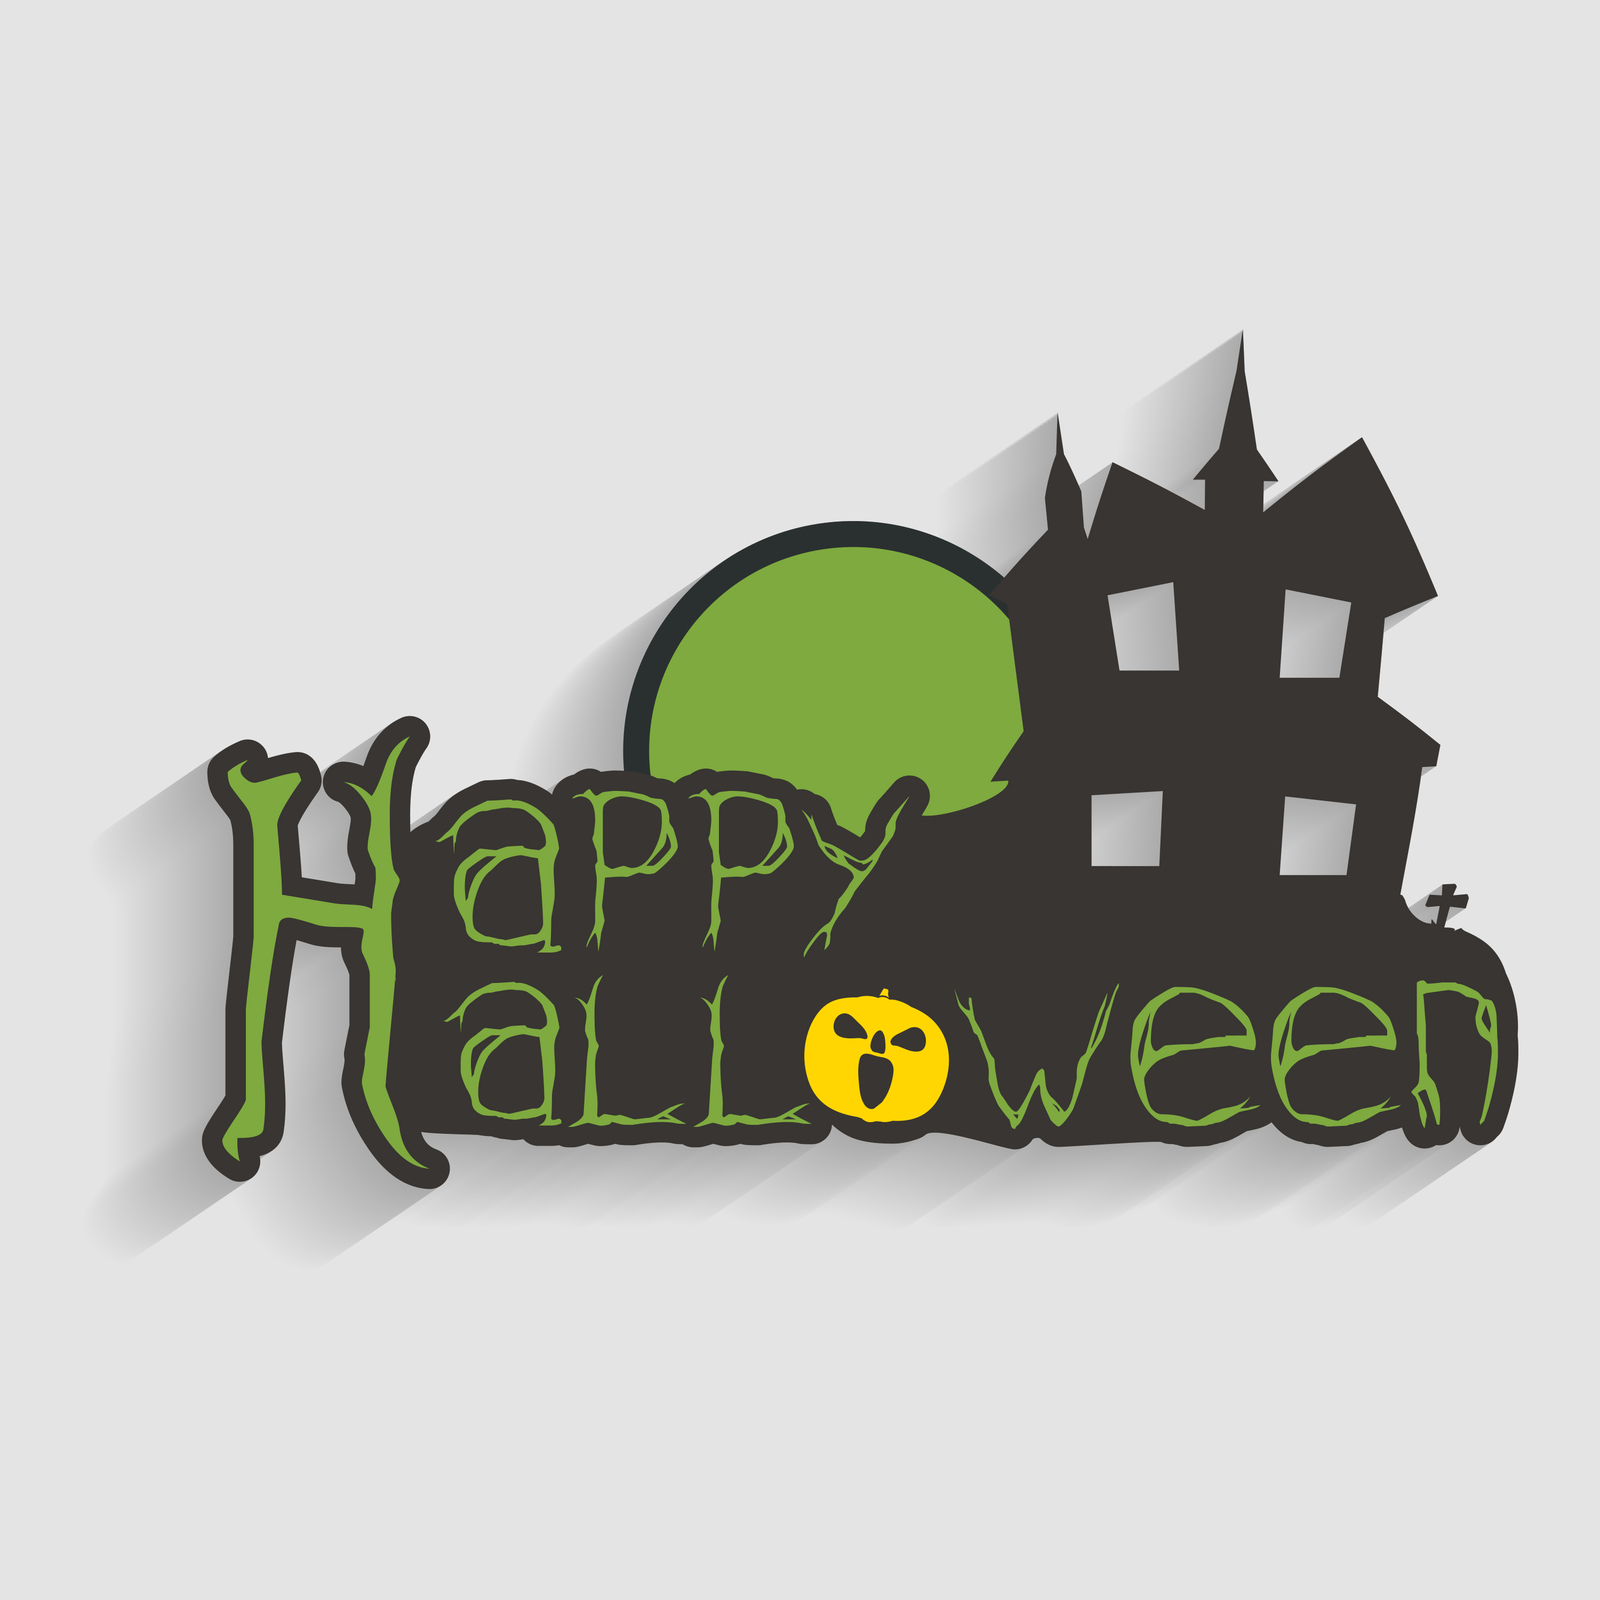 Banner-or-background-for-halloween-party-night-with-haunted-house-and-styli_m1vlje_l